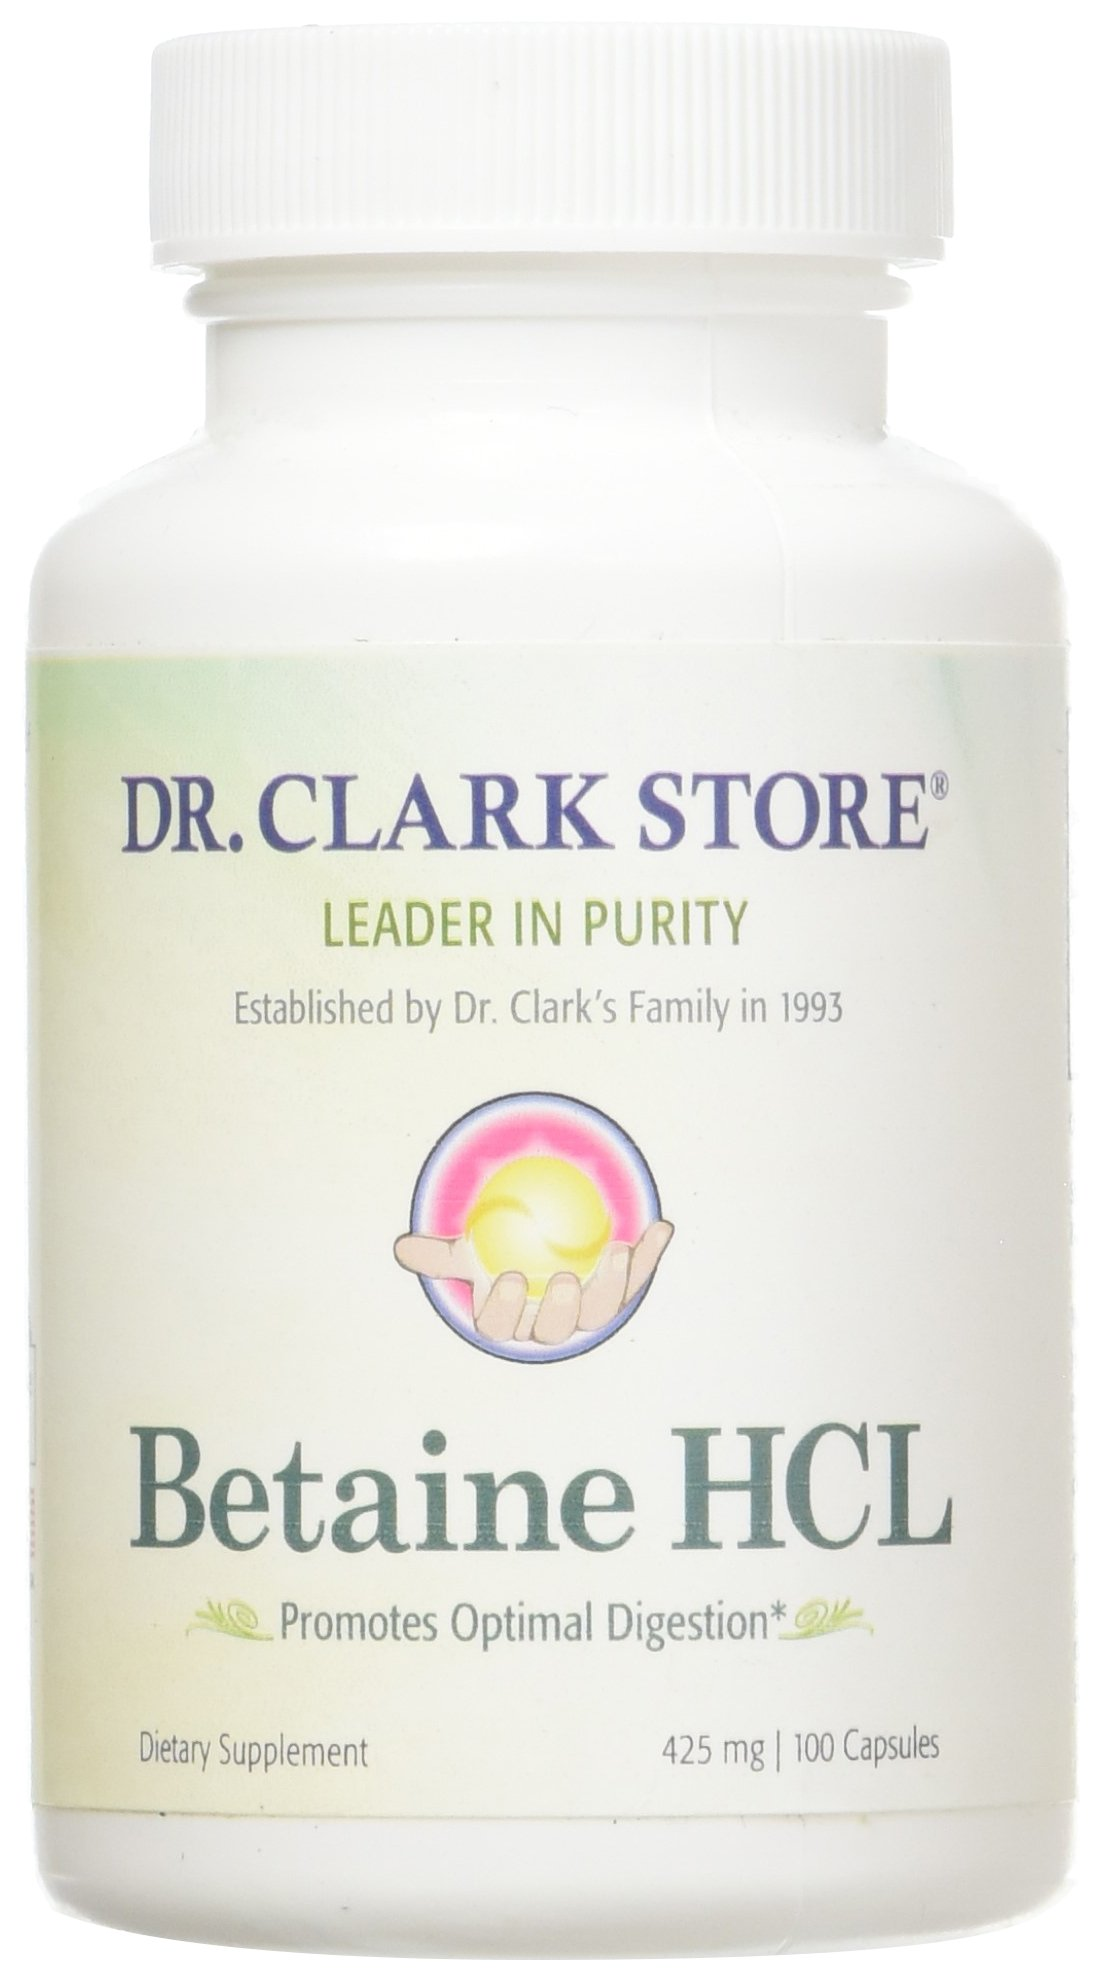 Watch Betaine Reviews video